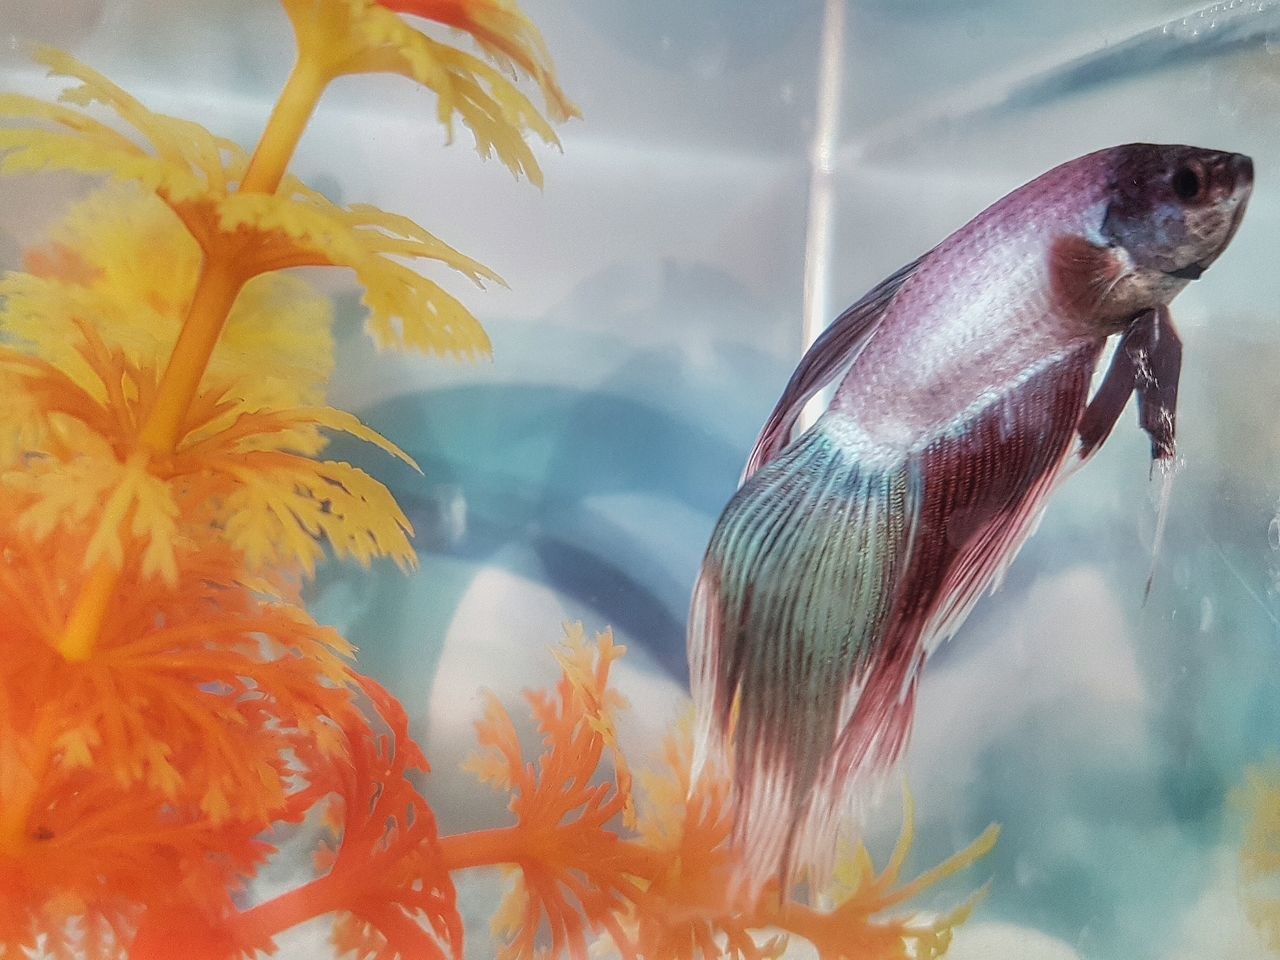 Fishsitting over... Fish Aquarium Gone Home Loner Life Aquarium Life Living In A Box Pastel Colourful Aquatic Plant Just Keep Swimming Colour Version Hdr Edit Fine Art Photography Showcase July Colour Of Life Millennial Pink